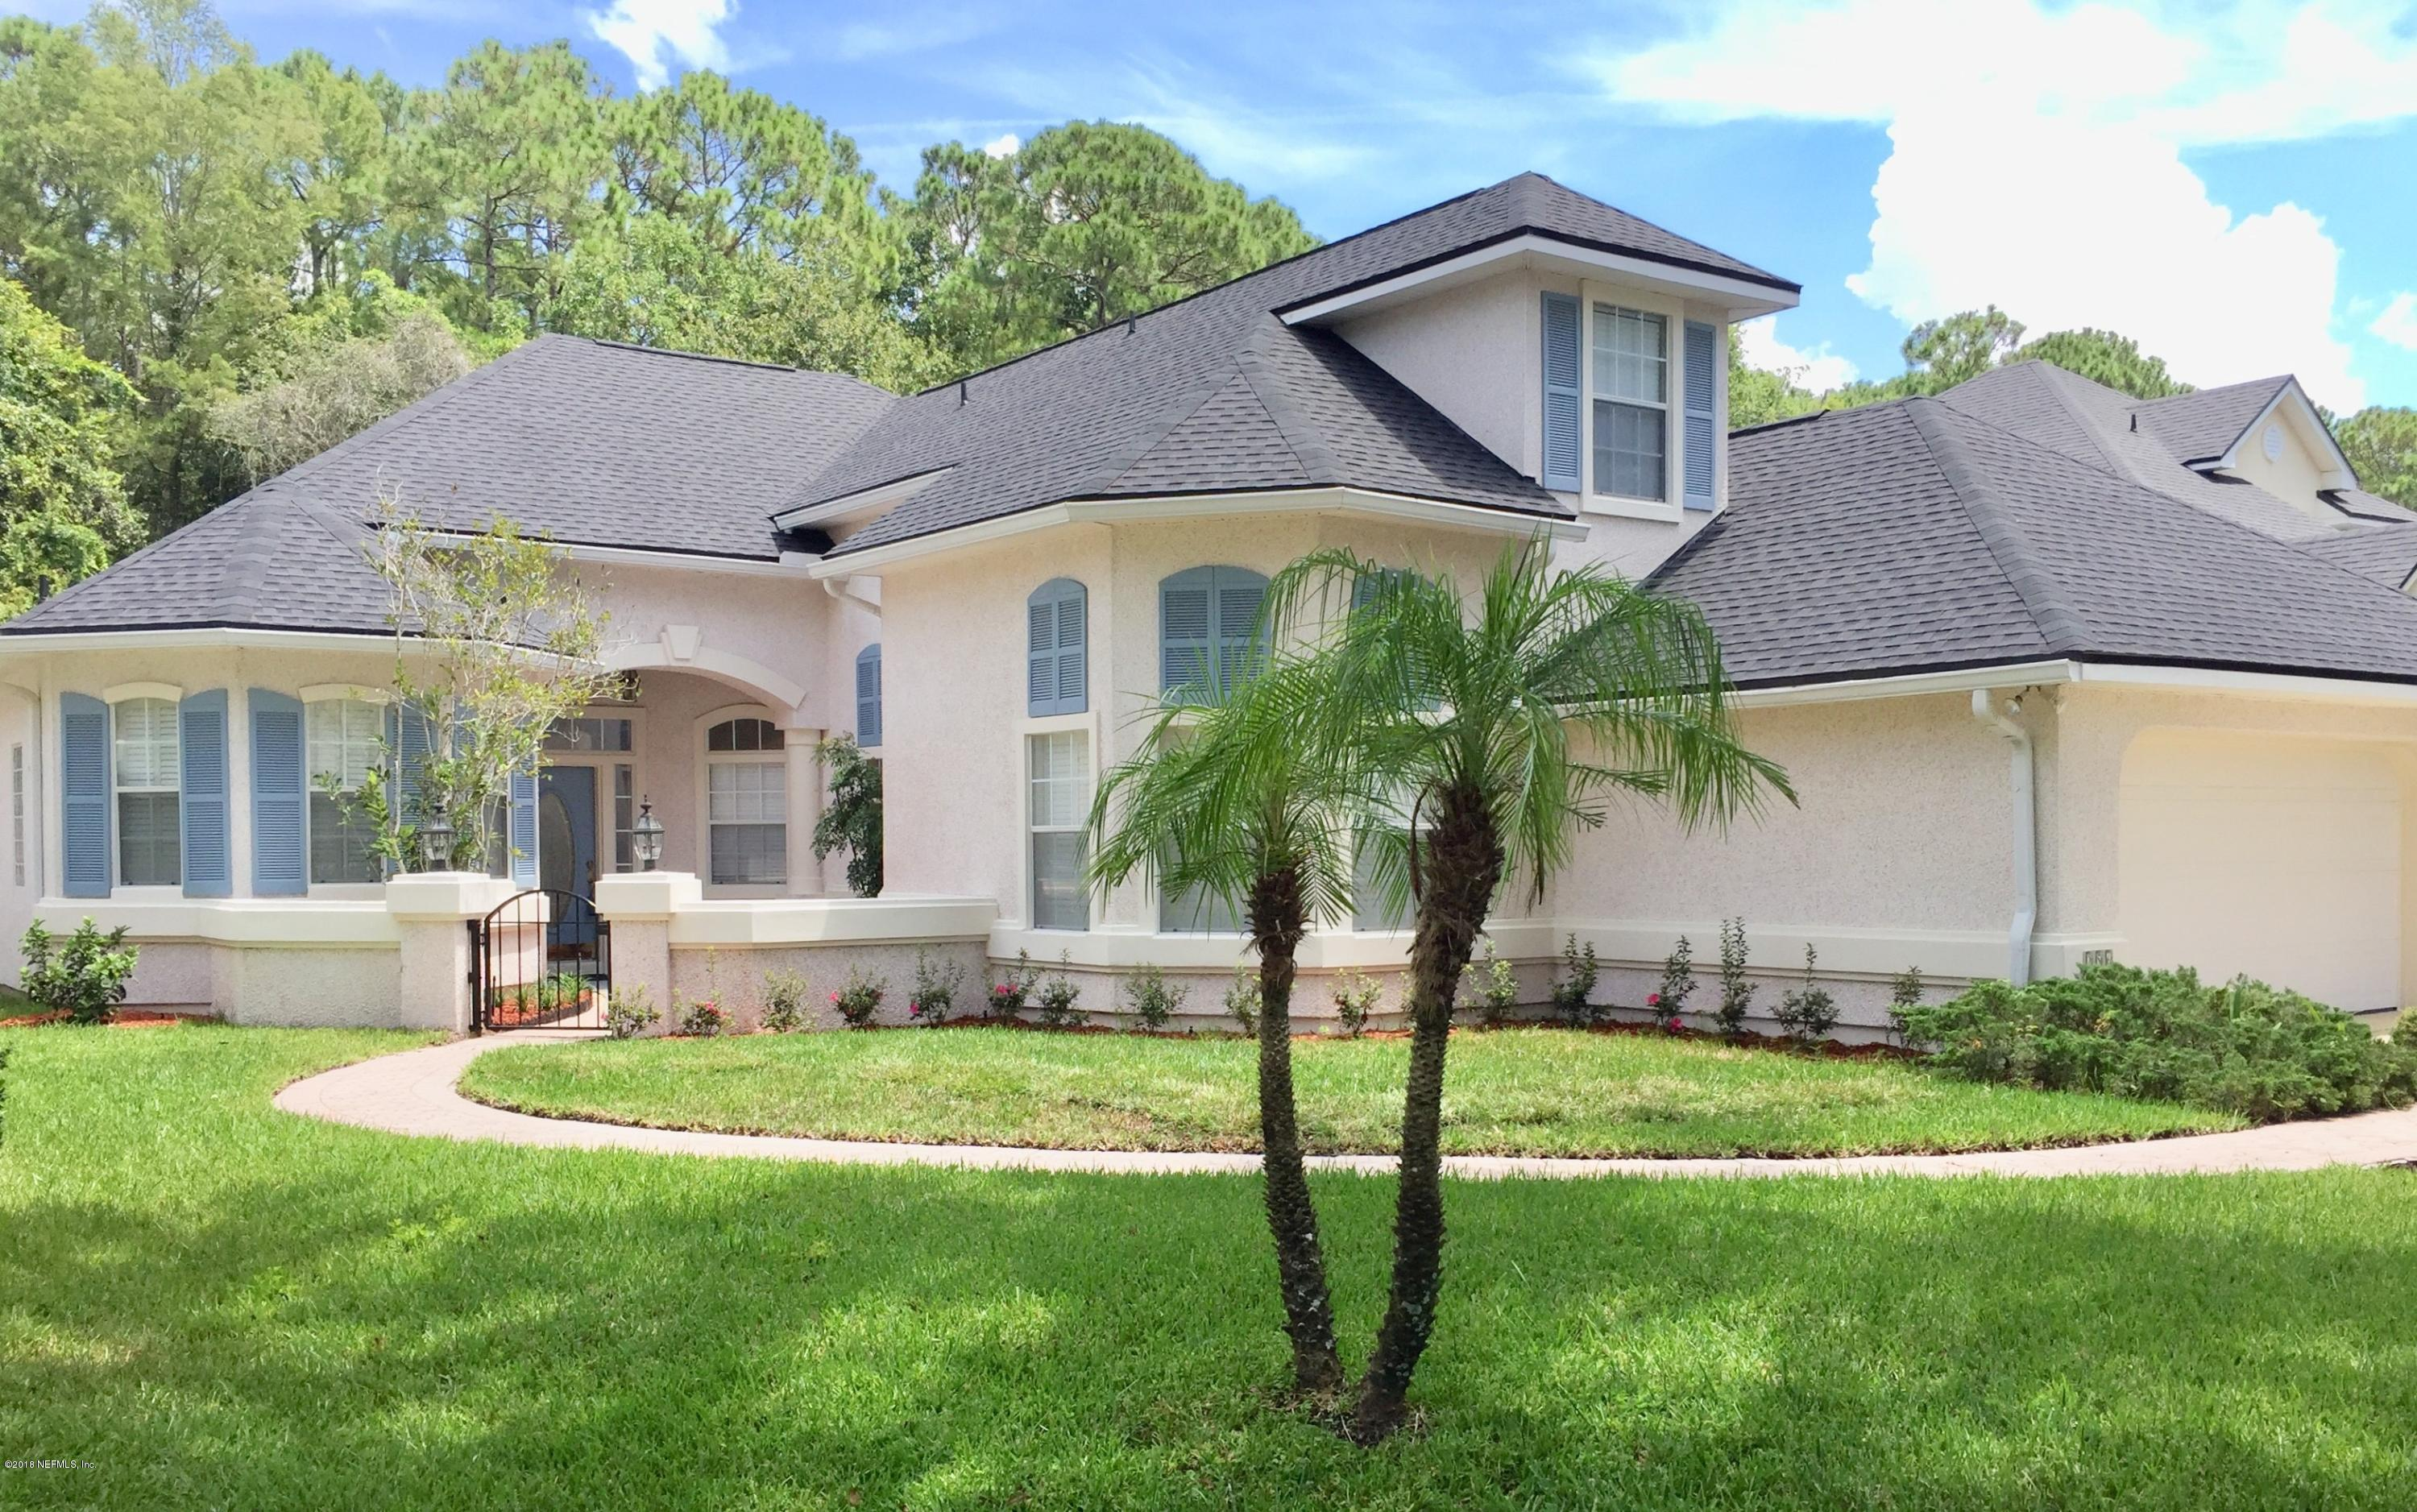 256 SWEETBRIER BRANCH, ST JOHNS, FLORIDA 32259, 4 Bedrooms Bedrooms, ,3 BathroomsBathrooms,Residential - single family,For sale,SWEETBRIER BRANCH,952785